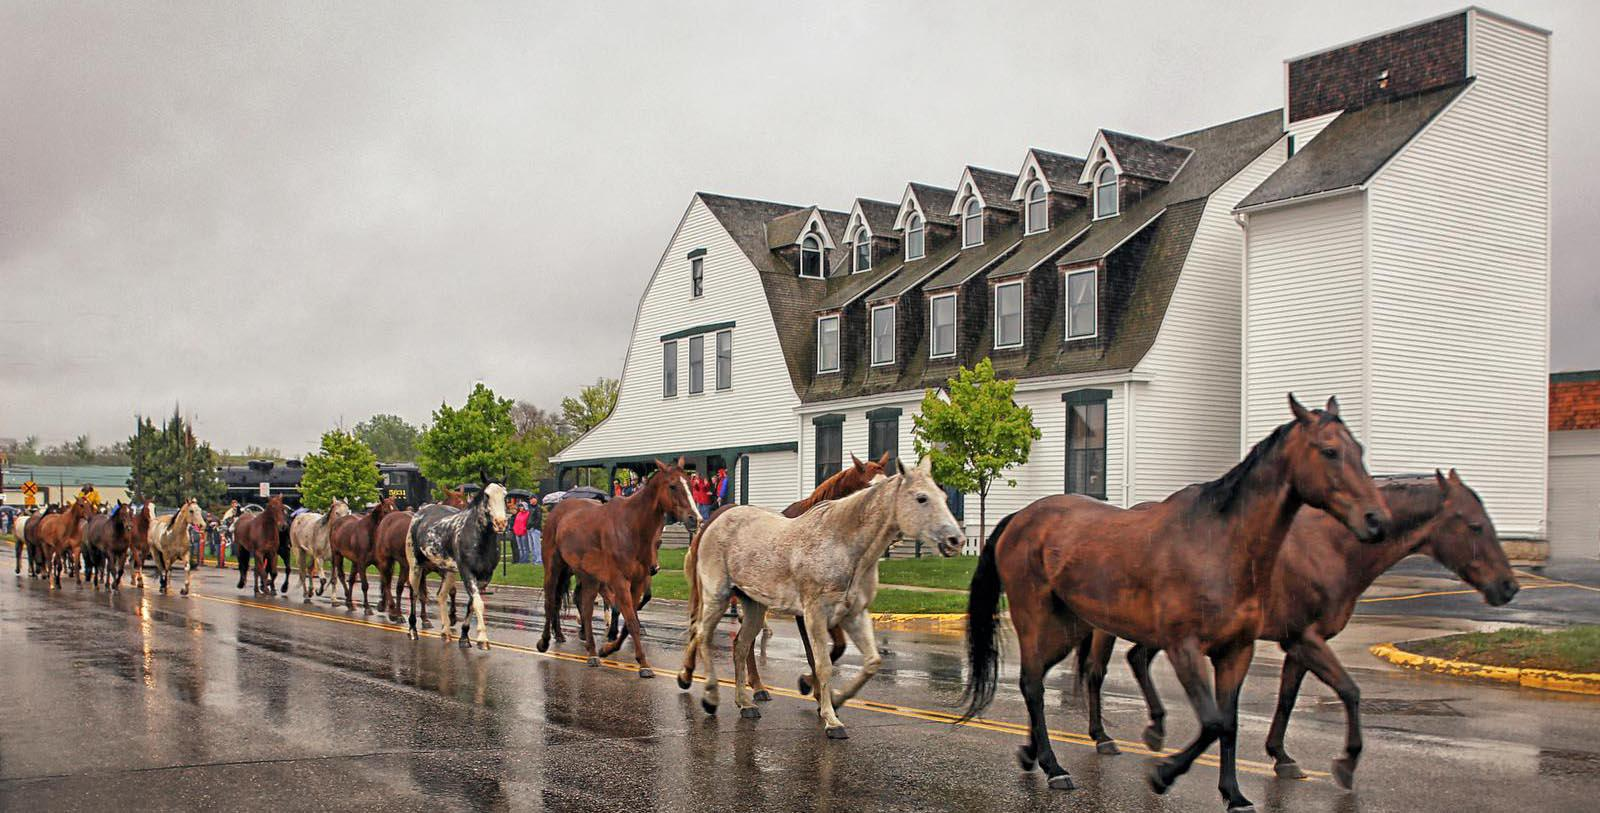 Horses walking by Exterior Sheridan Inn, 1893, Member of Historic Hotels of America, in Sheridan, Wyoming, Discover